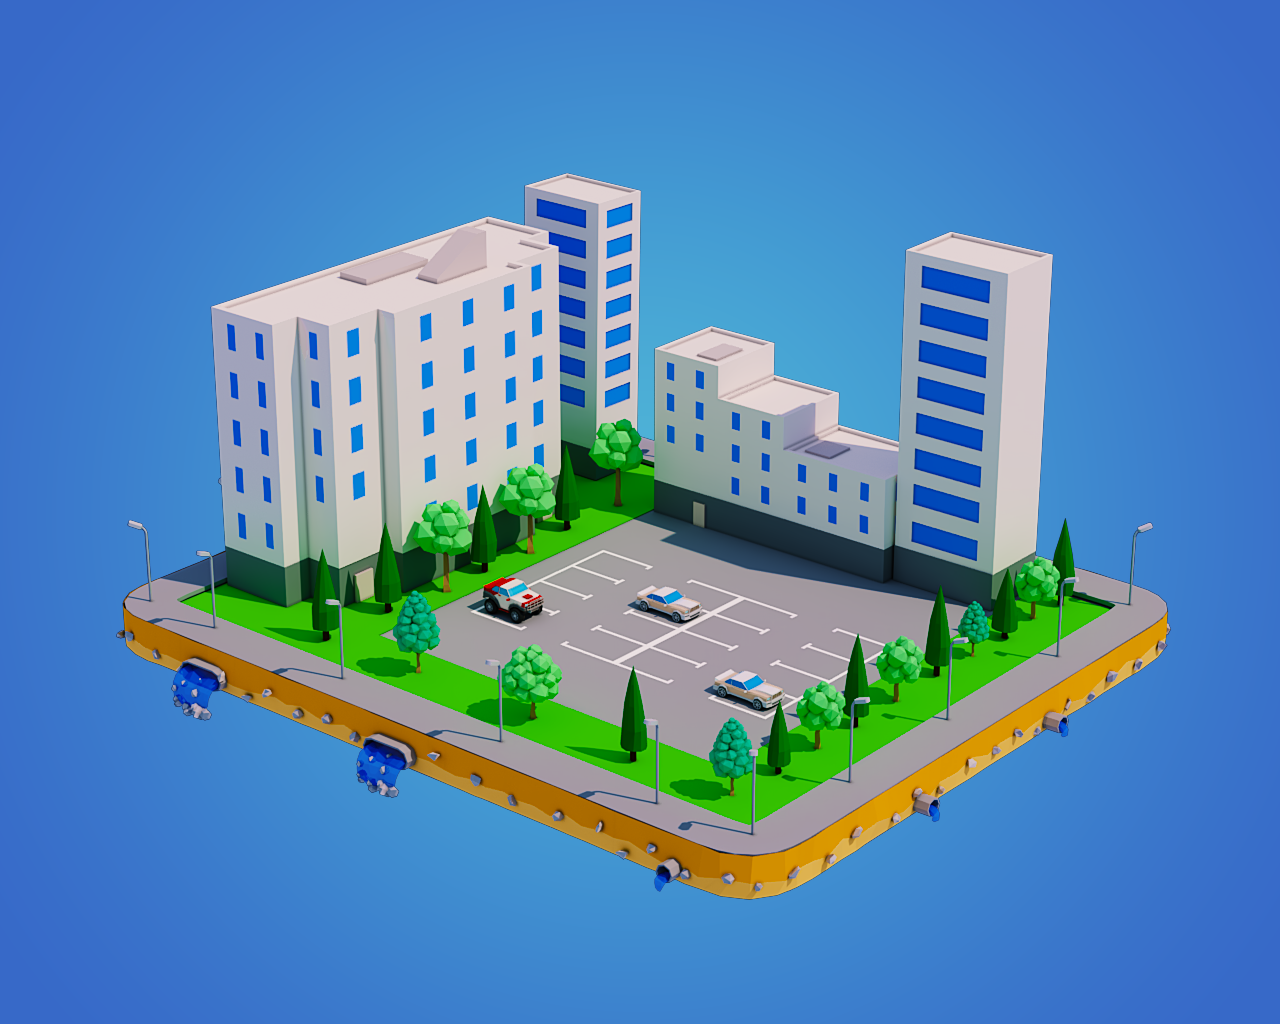 low poly city block 3d model in cityscapes 3dexport low poly city png 1280 1024